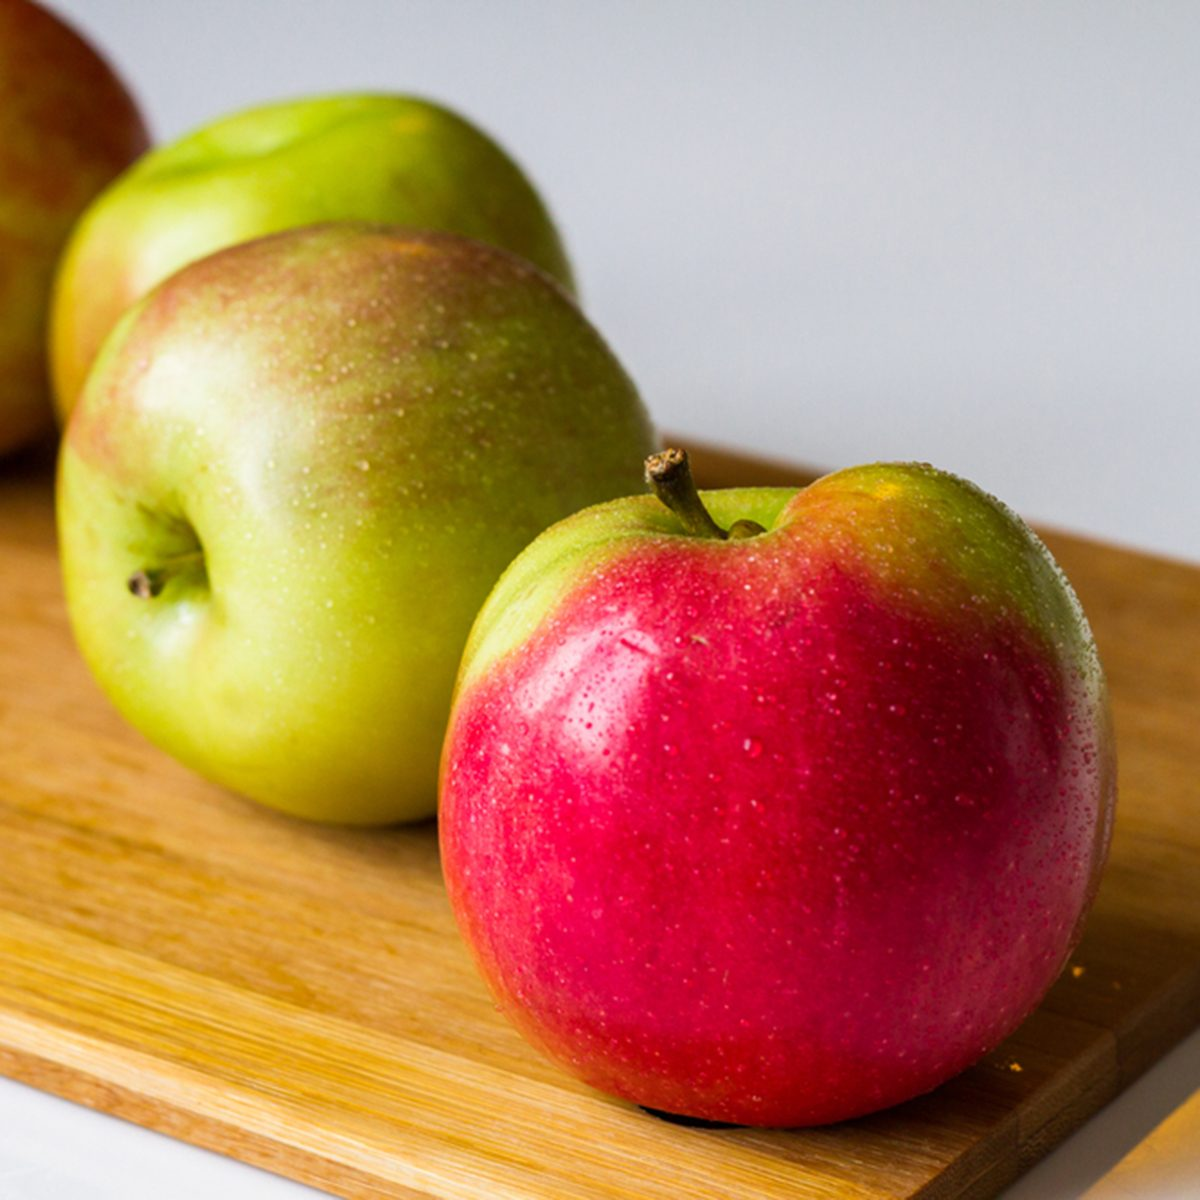 Idared Fresh apples on a cutting board.